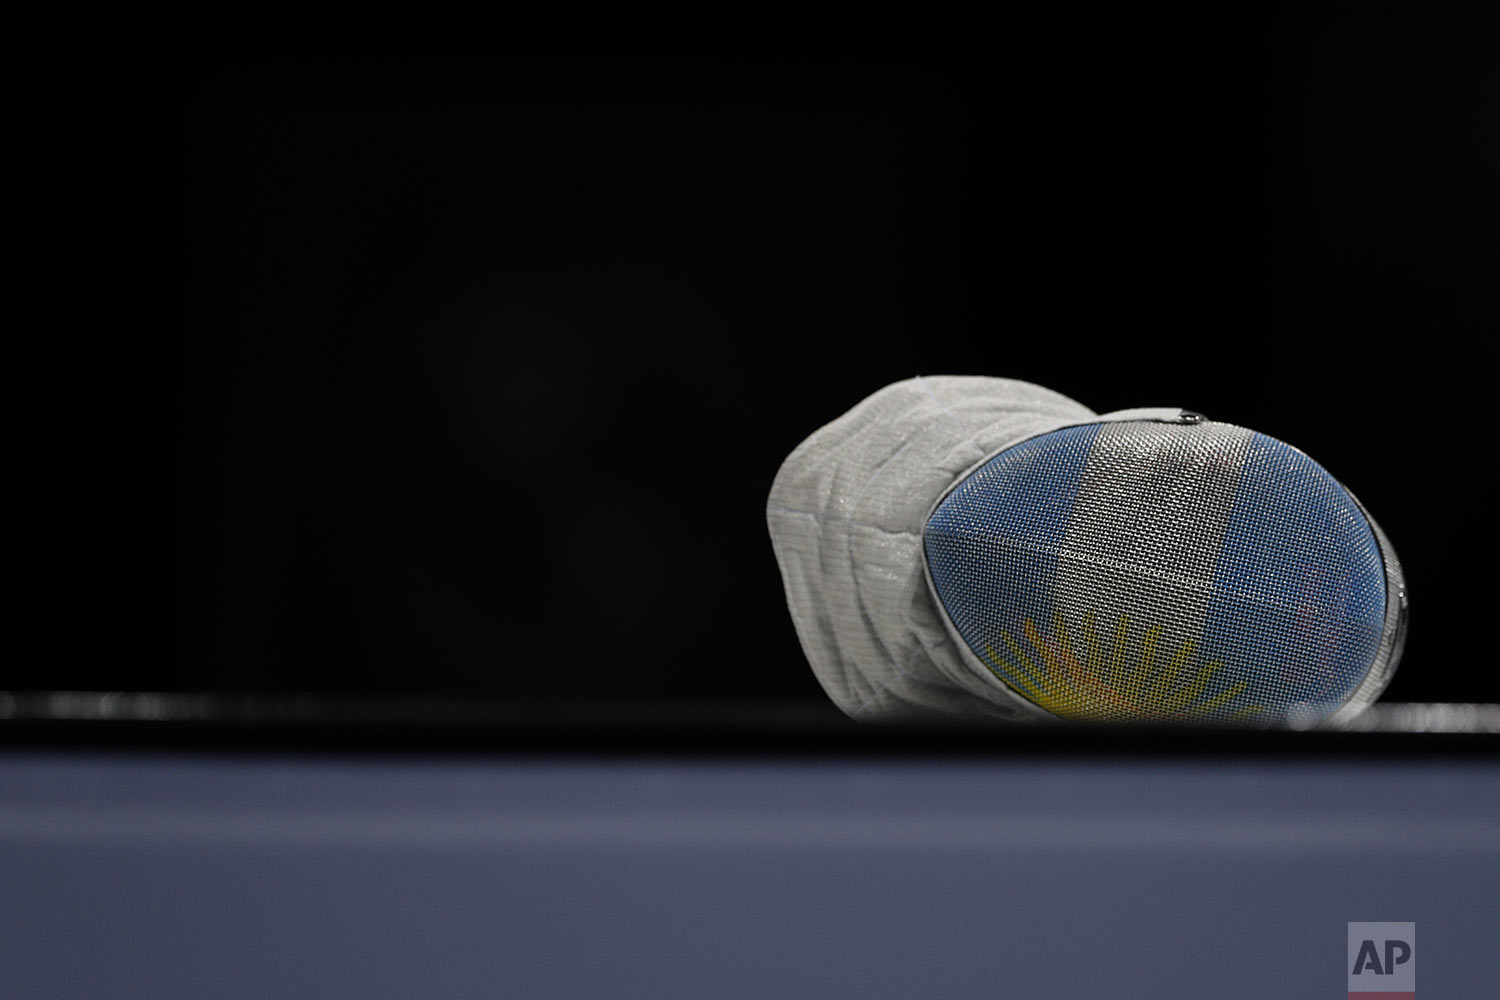 The mask of Argentina's Maria Perez lies on the fencing platform during a pause in her women's sabre individual fencing semifinal against Venezuela's Alejandra Benitez at the Pan American Games in Lima, Peru, Tuesday, Aug. 6, 2019. (AP Photo/Rebecca Blackwell)